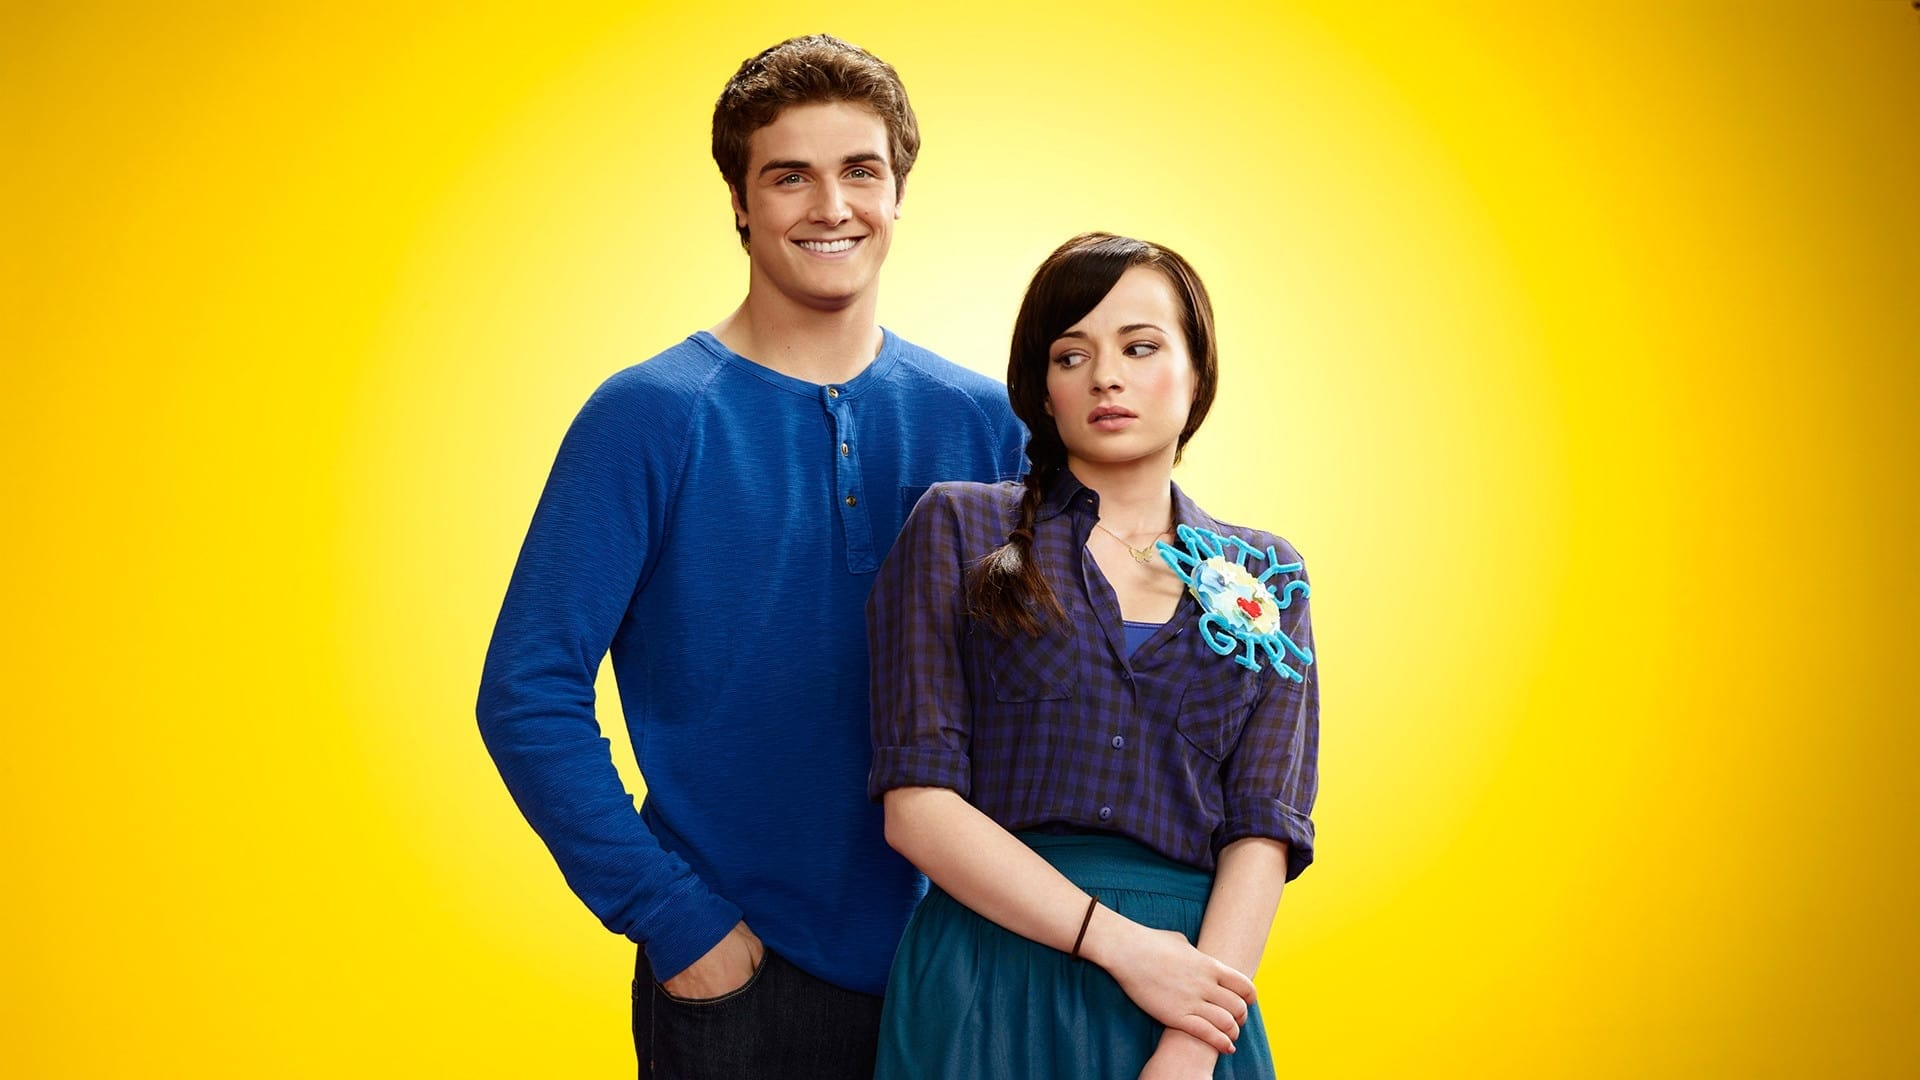 Awkward renewed with 5th (and last) season